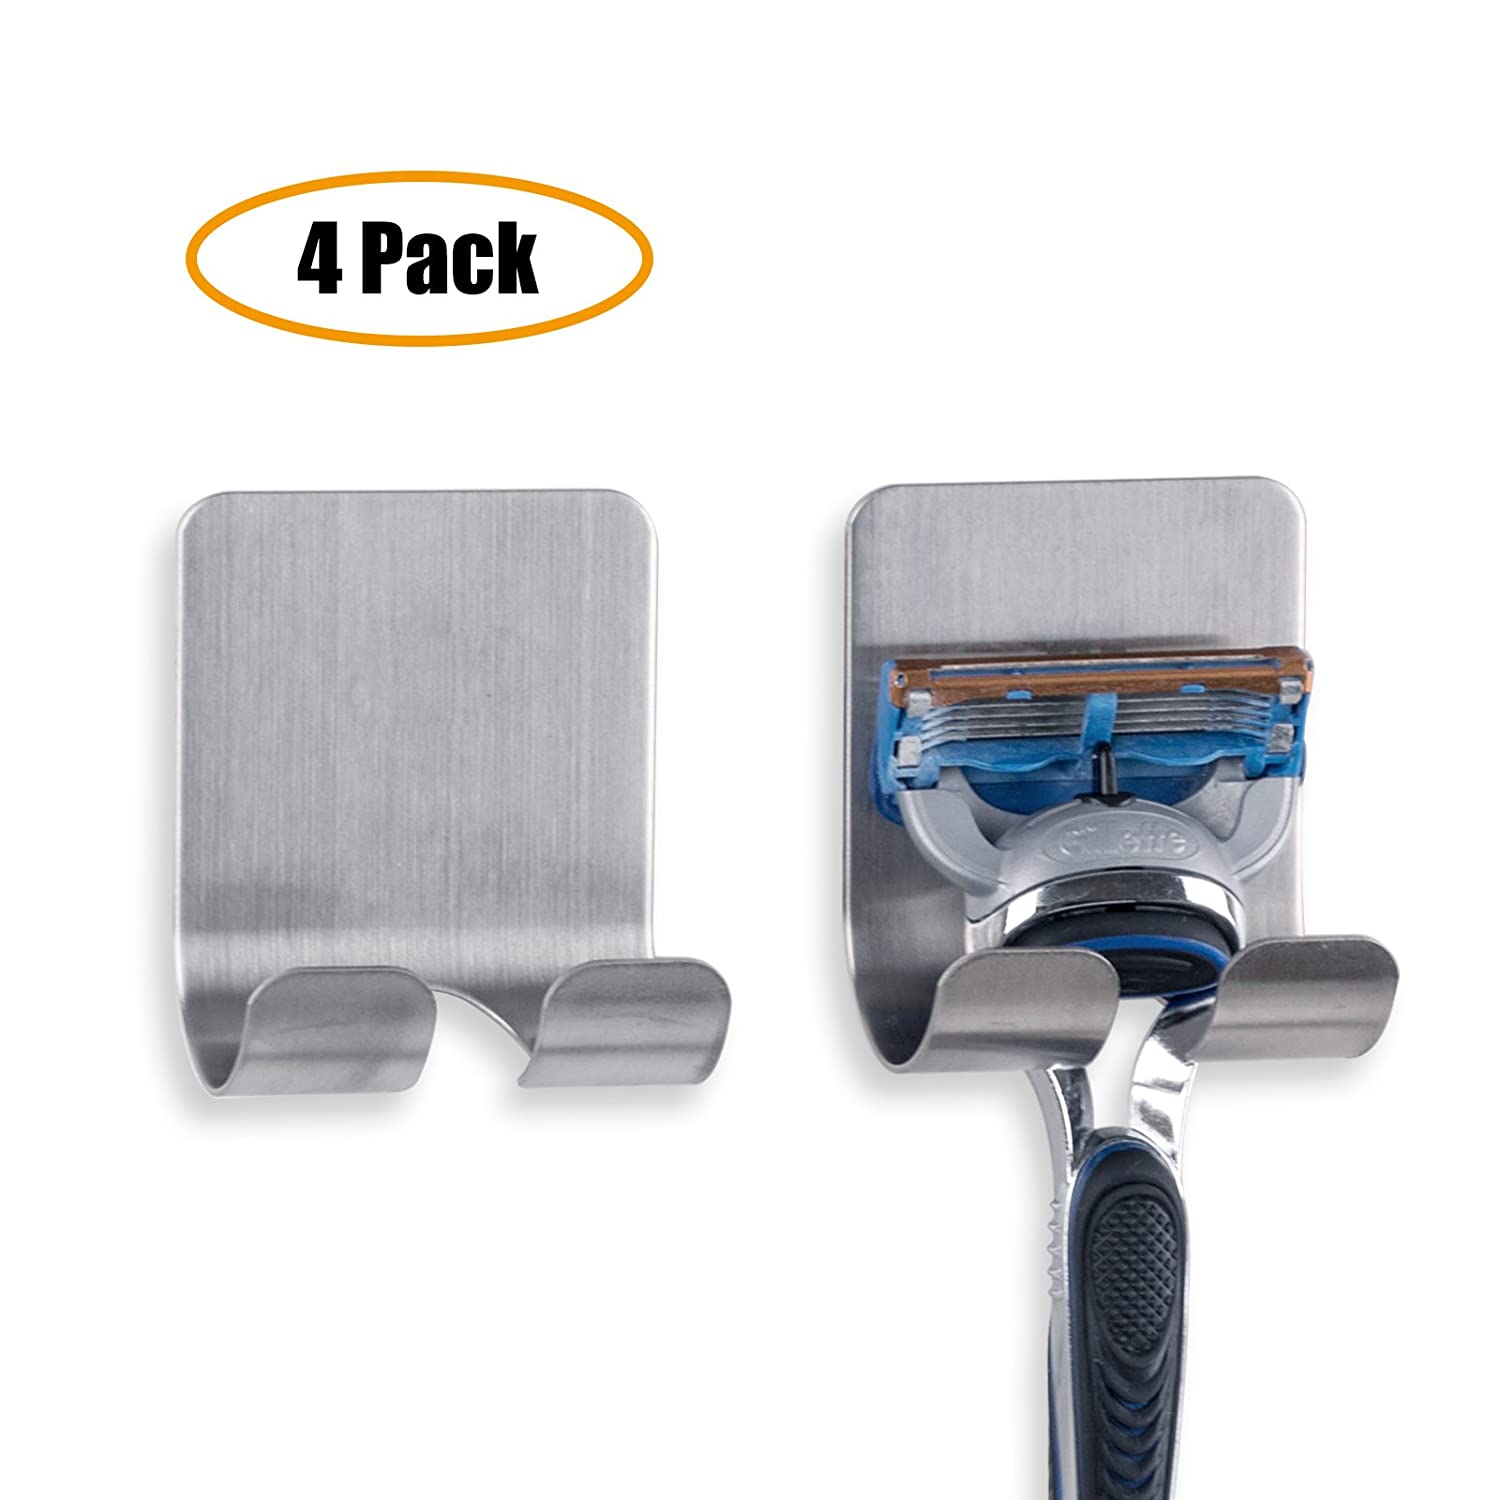 Life Creator Razor Holder Plug Holder Hook with Self Adhesive - Brushed Stainless Steel (4 Pack)